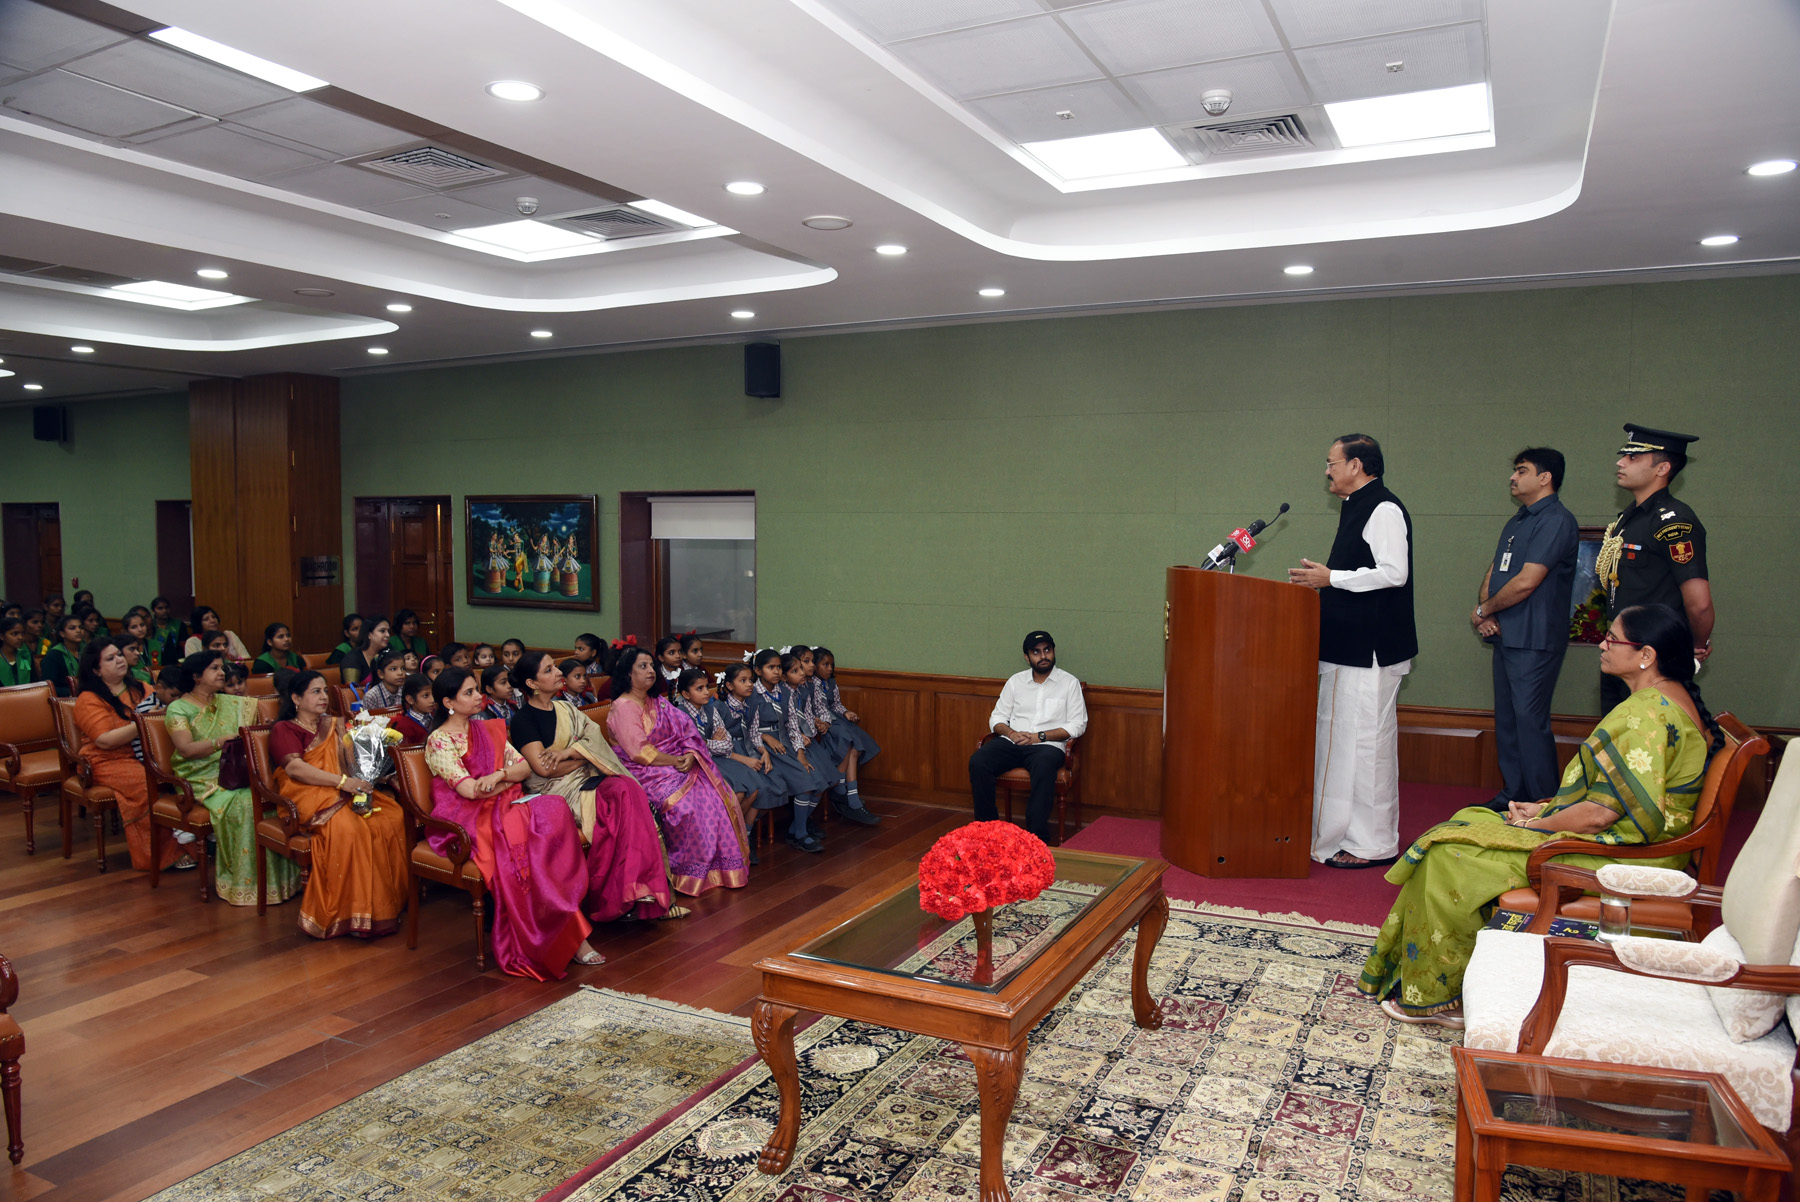 The Vice President, Shri M. Venkaiah Naidu addressing the students from various school from across National Capital Region, Haryana, Uttar Pradesh and other Neighbouring states on the occasion of Children's Day, in New Delhi on 14 November, 2019.